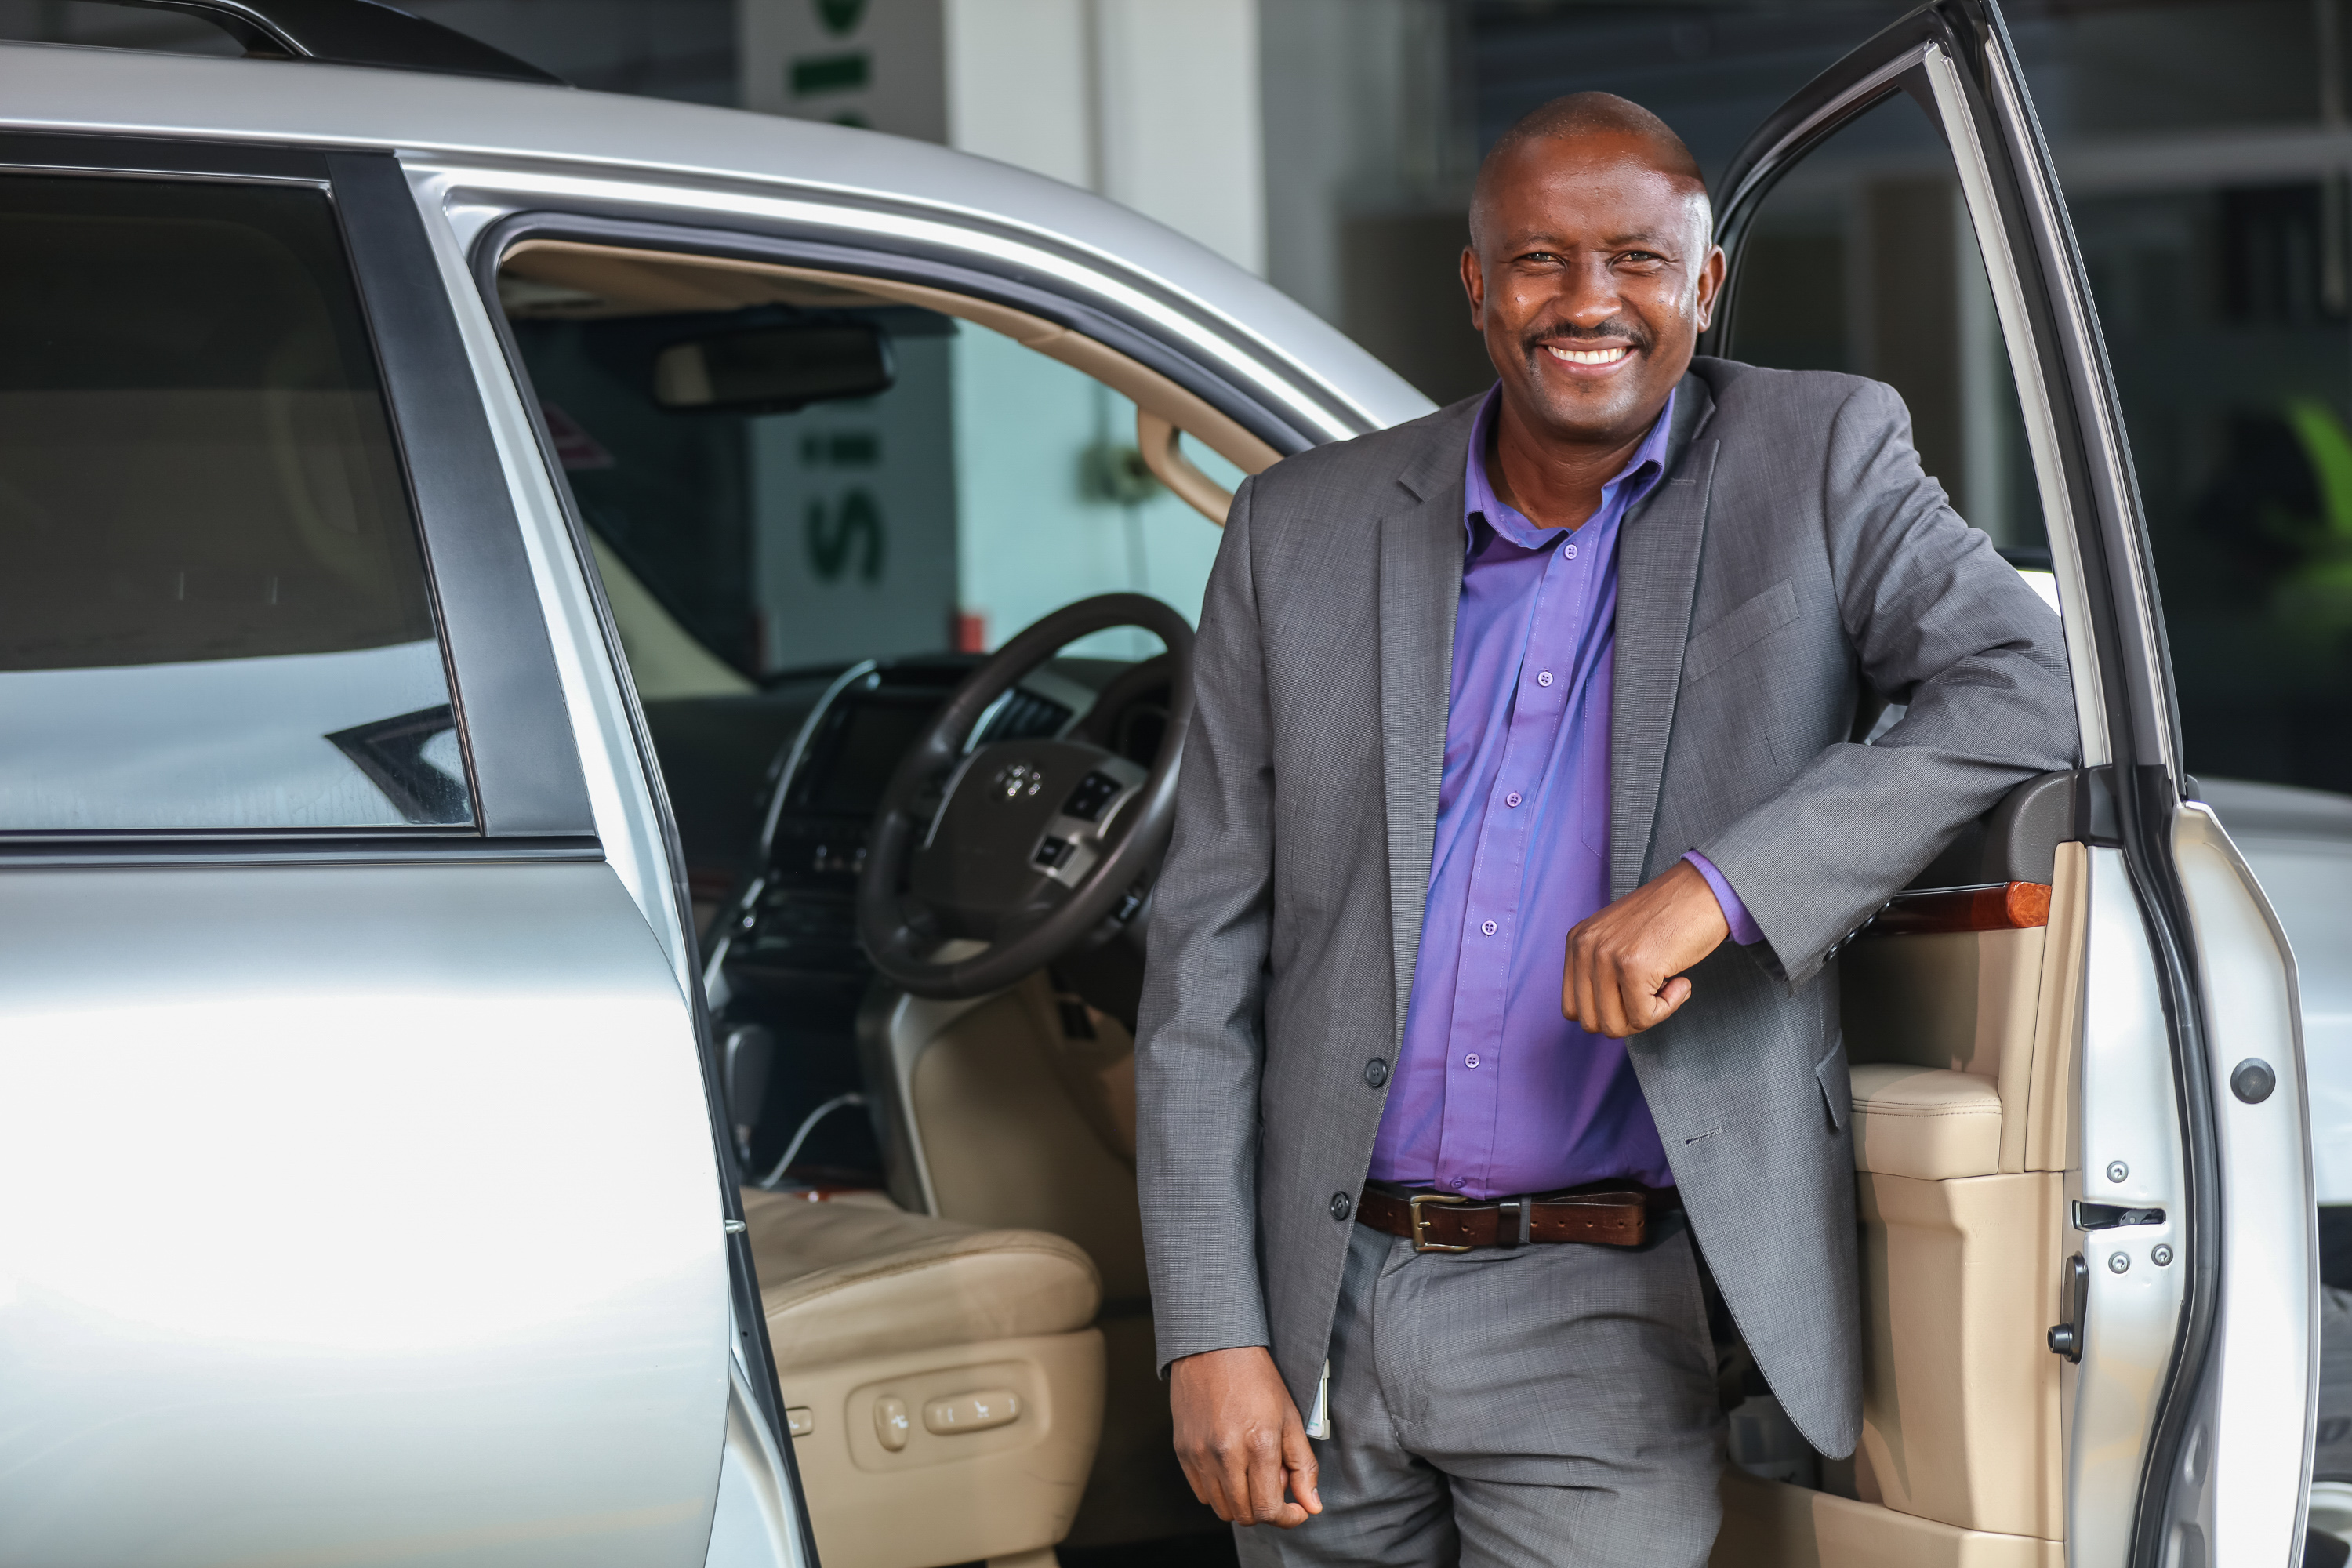 Kennedy Nene met Bob Collymore while working for a tour and travel company. He later became his driver until Bob's passing.